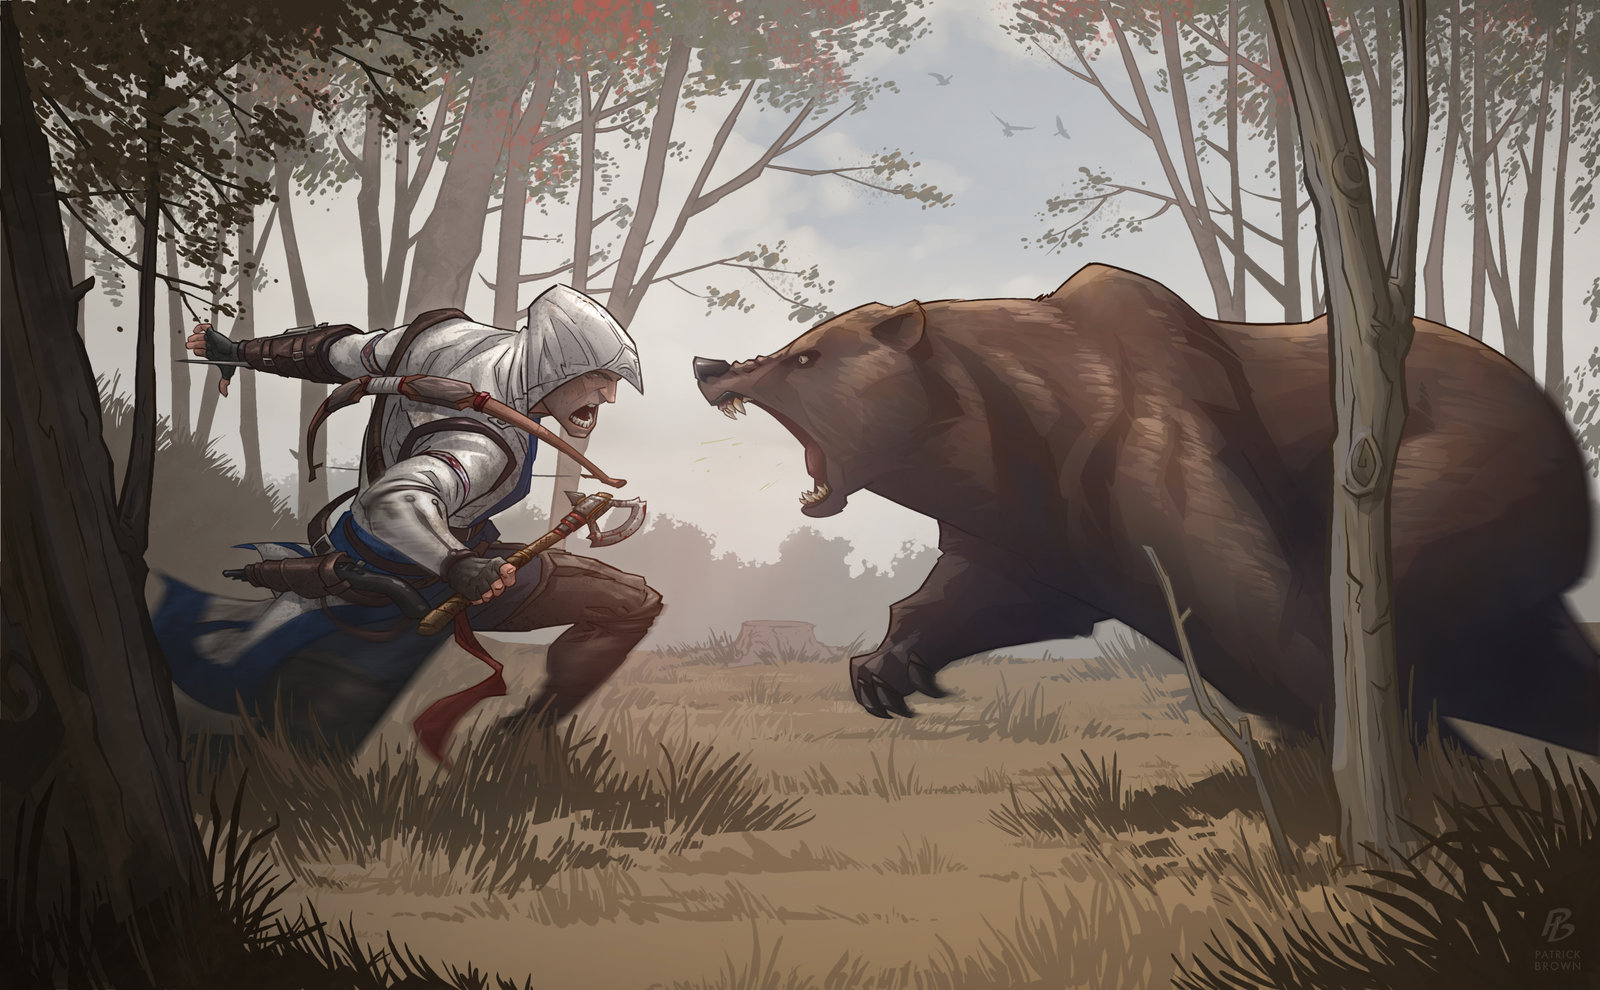 'Assassin's Creed 3 Bear Attack' - Patrick Brown